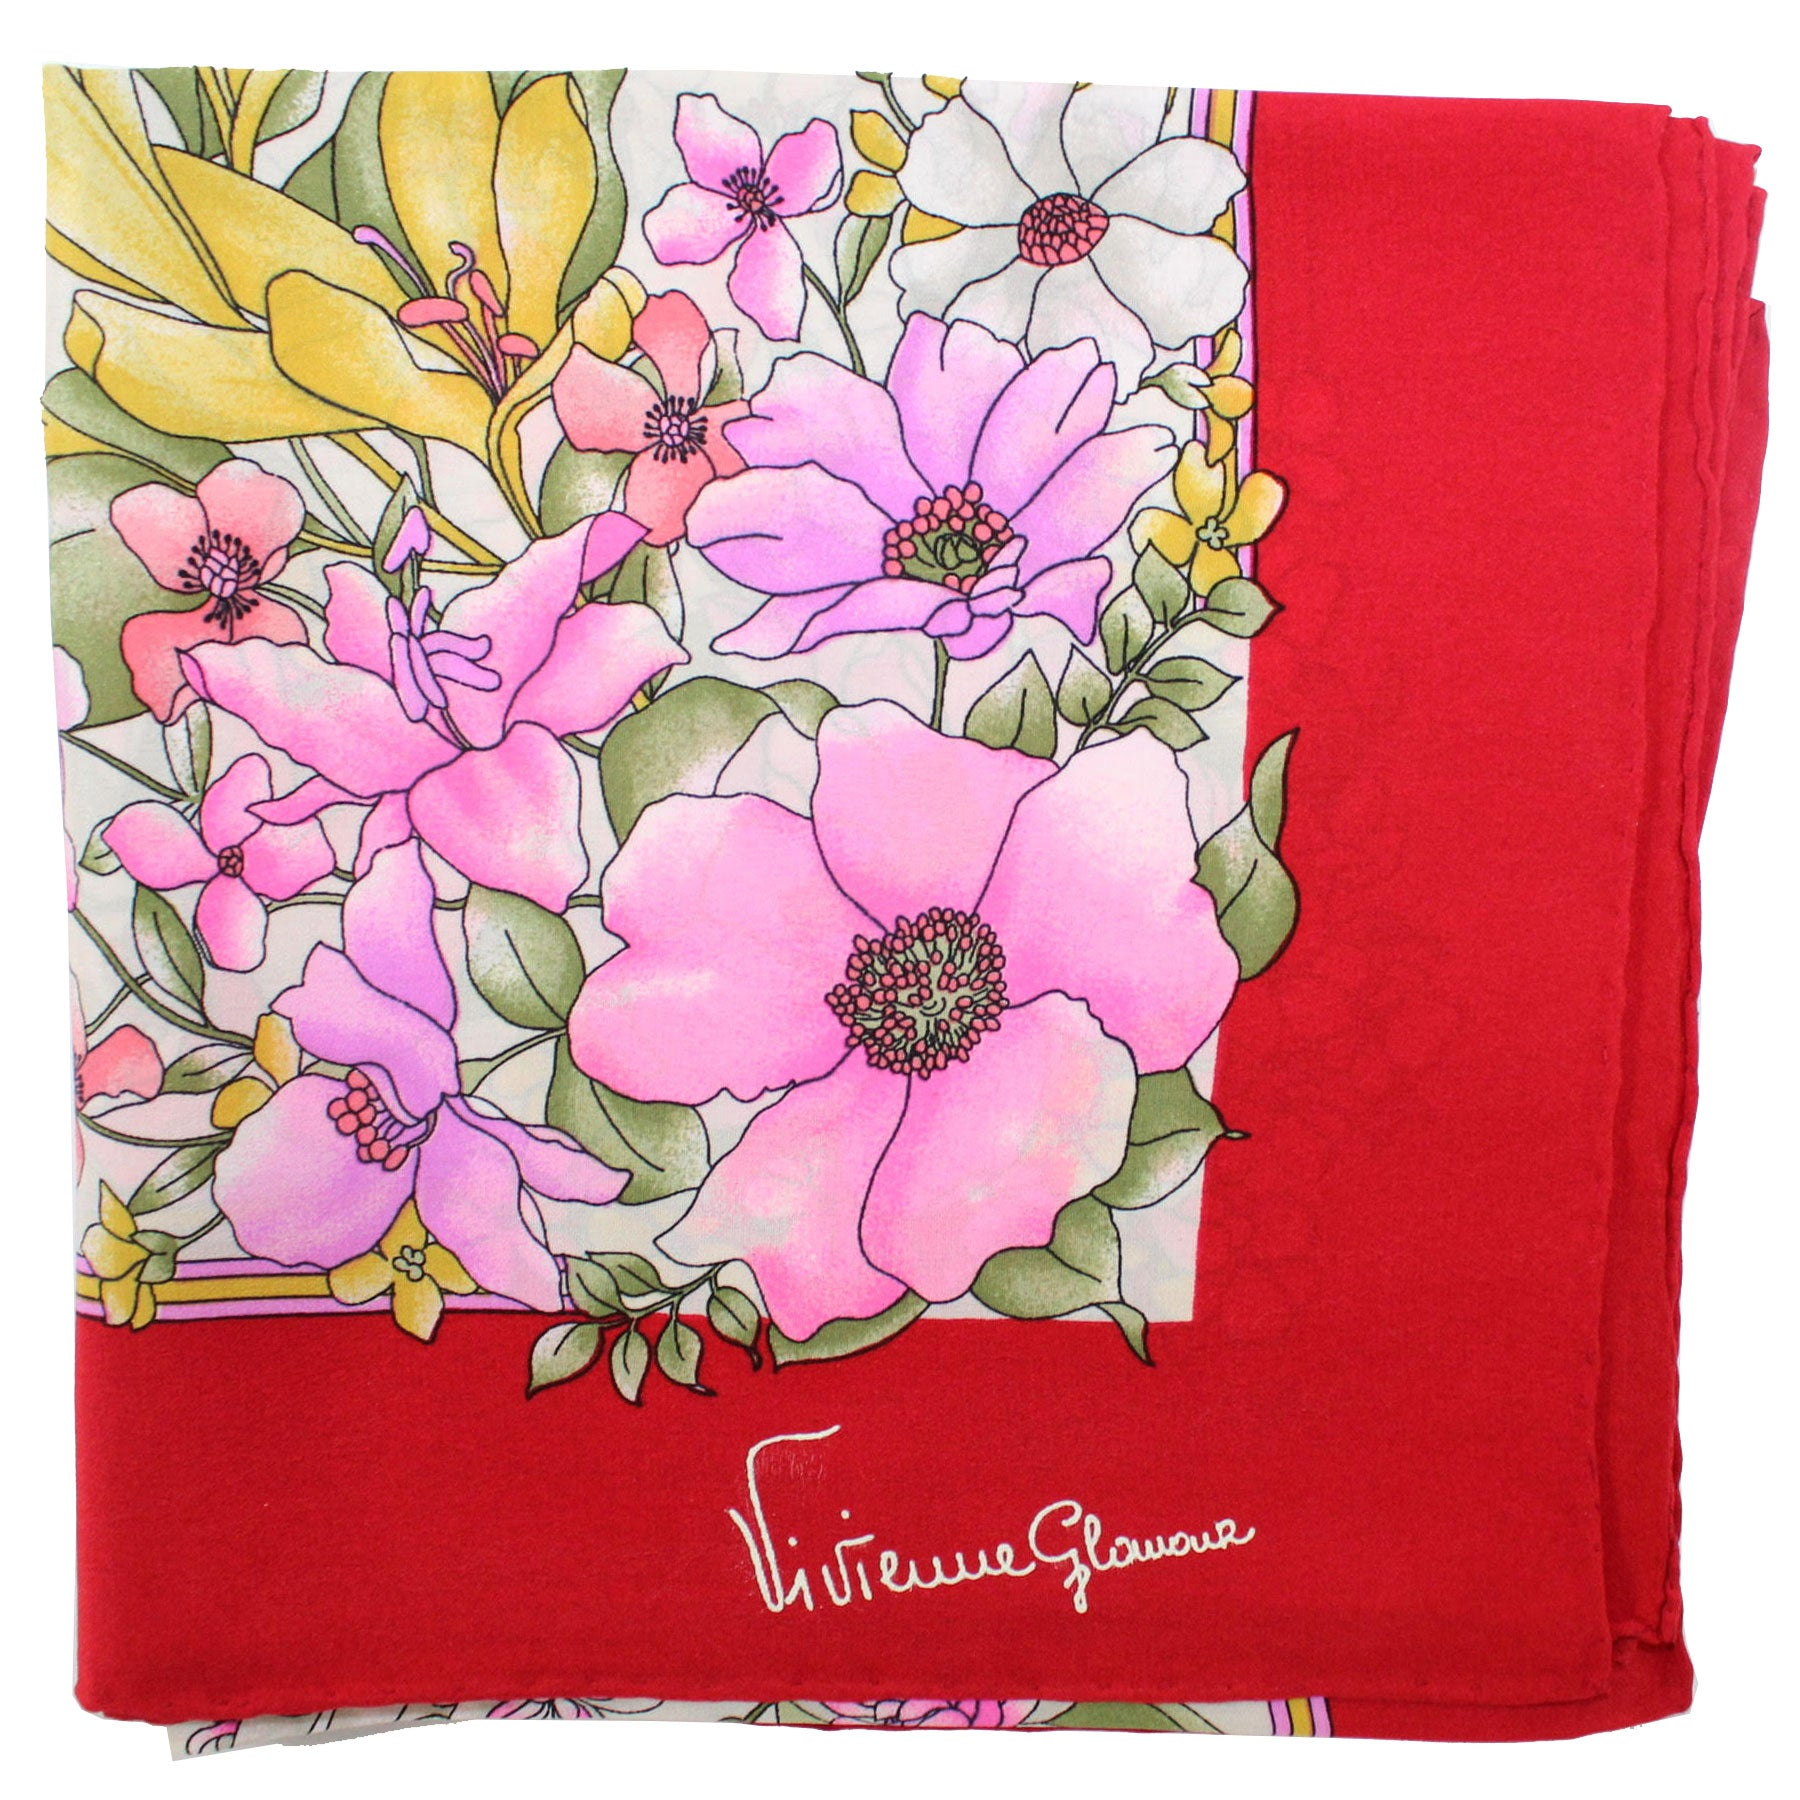 Vivienne Glamour Scarf Red Pink Yellow Floral - Large Silk Square Scarf